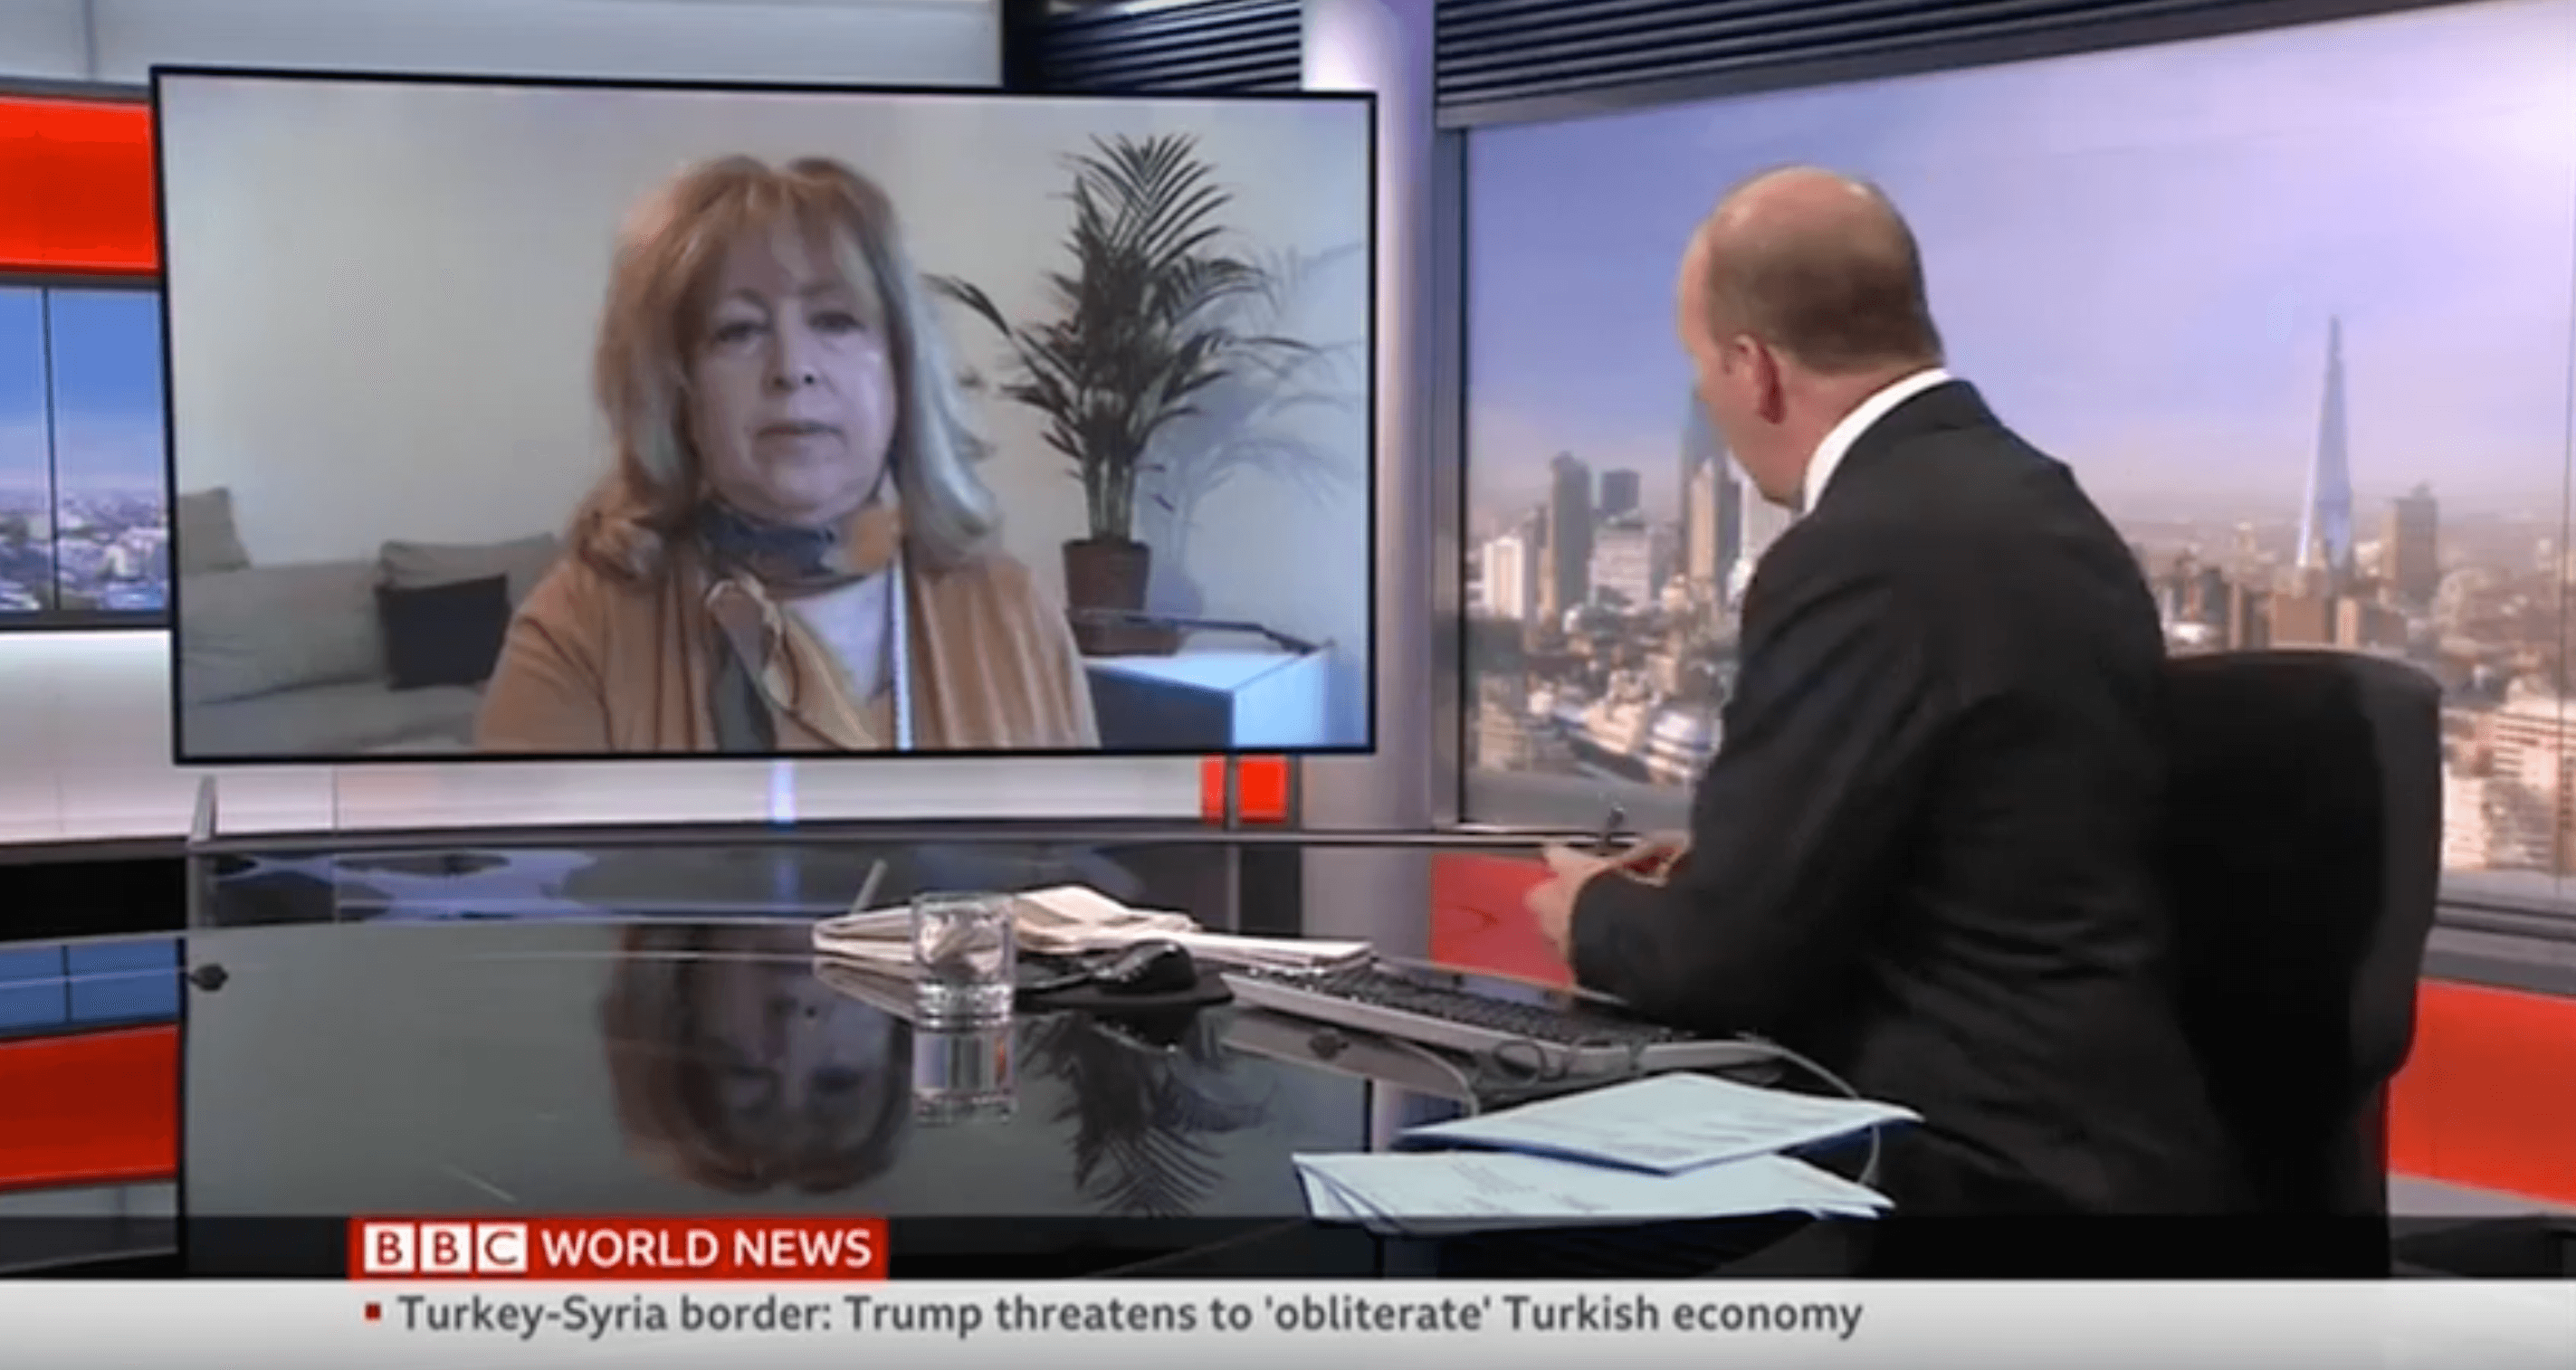 ICSVE's Dr. Anne Speckhard On BBC: US Allows Turkish Incursion Into SDF Territory